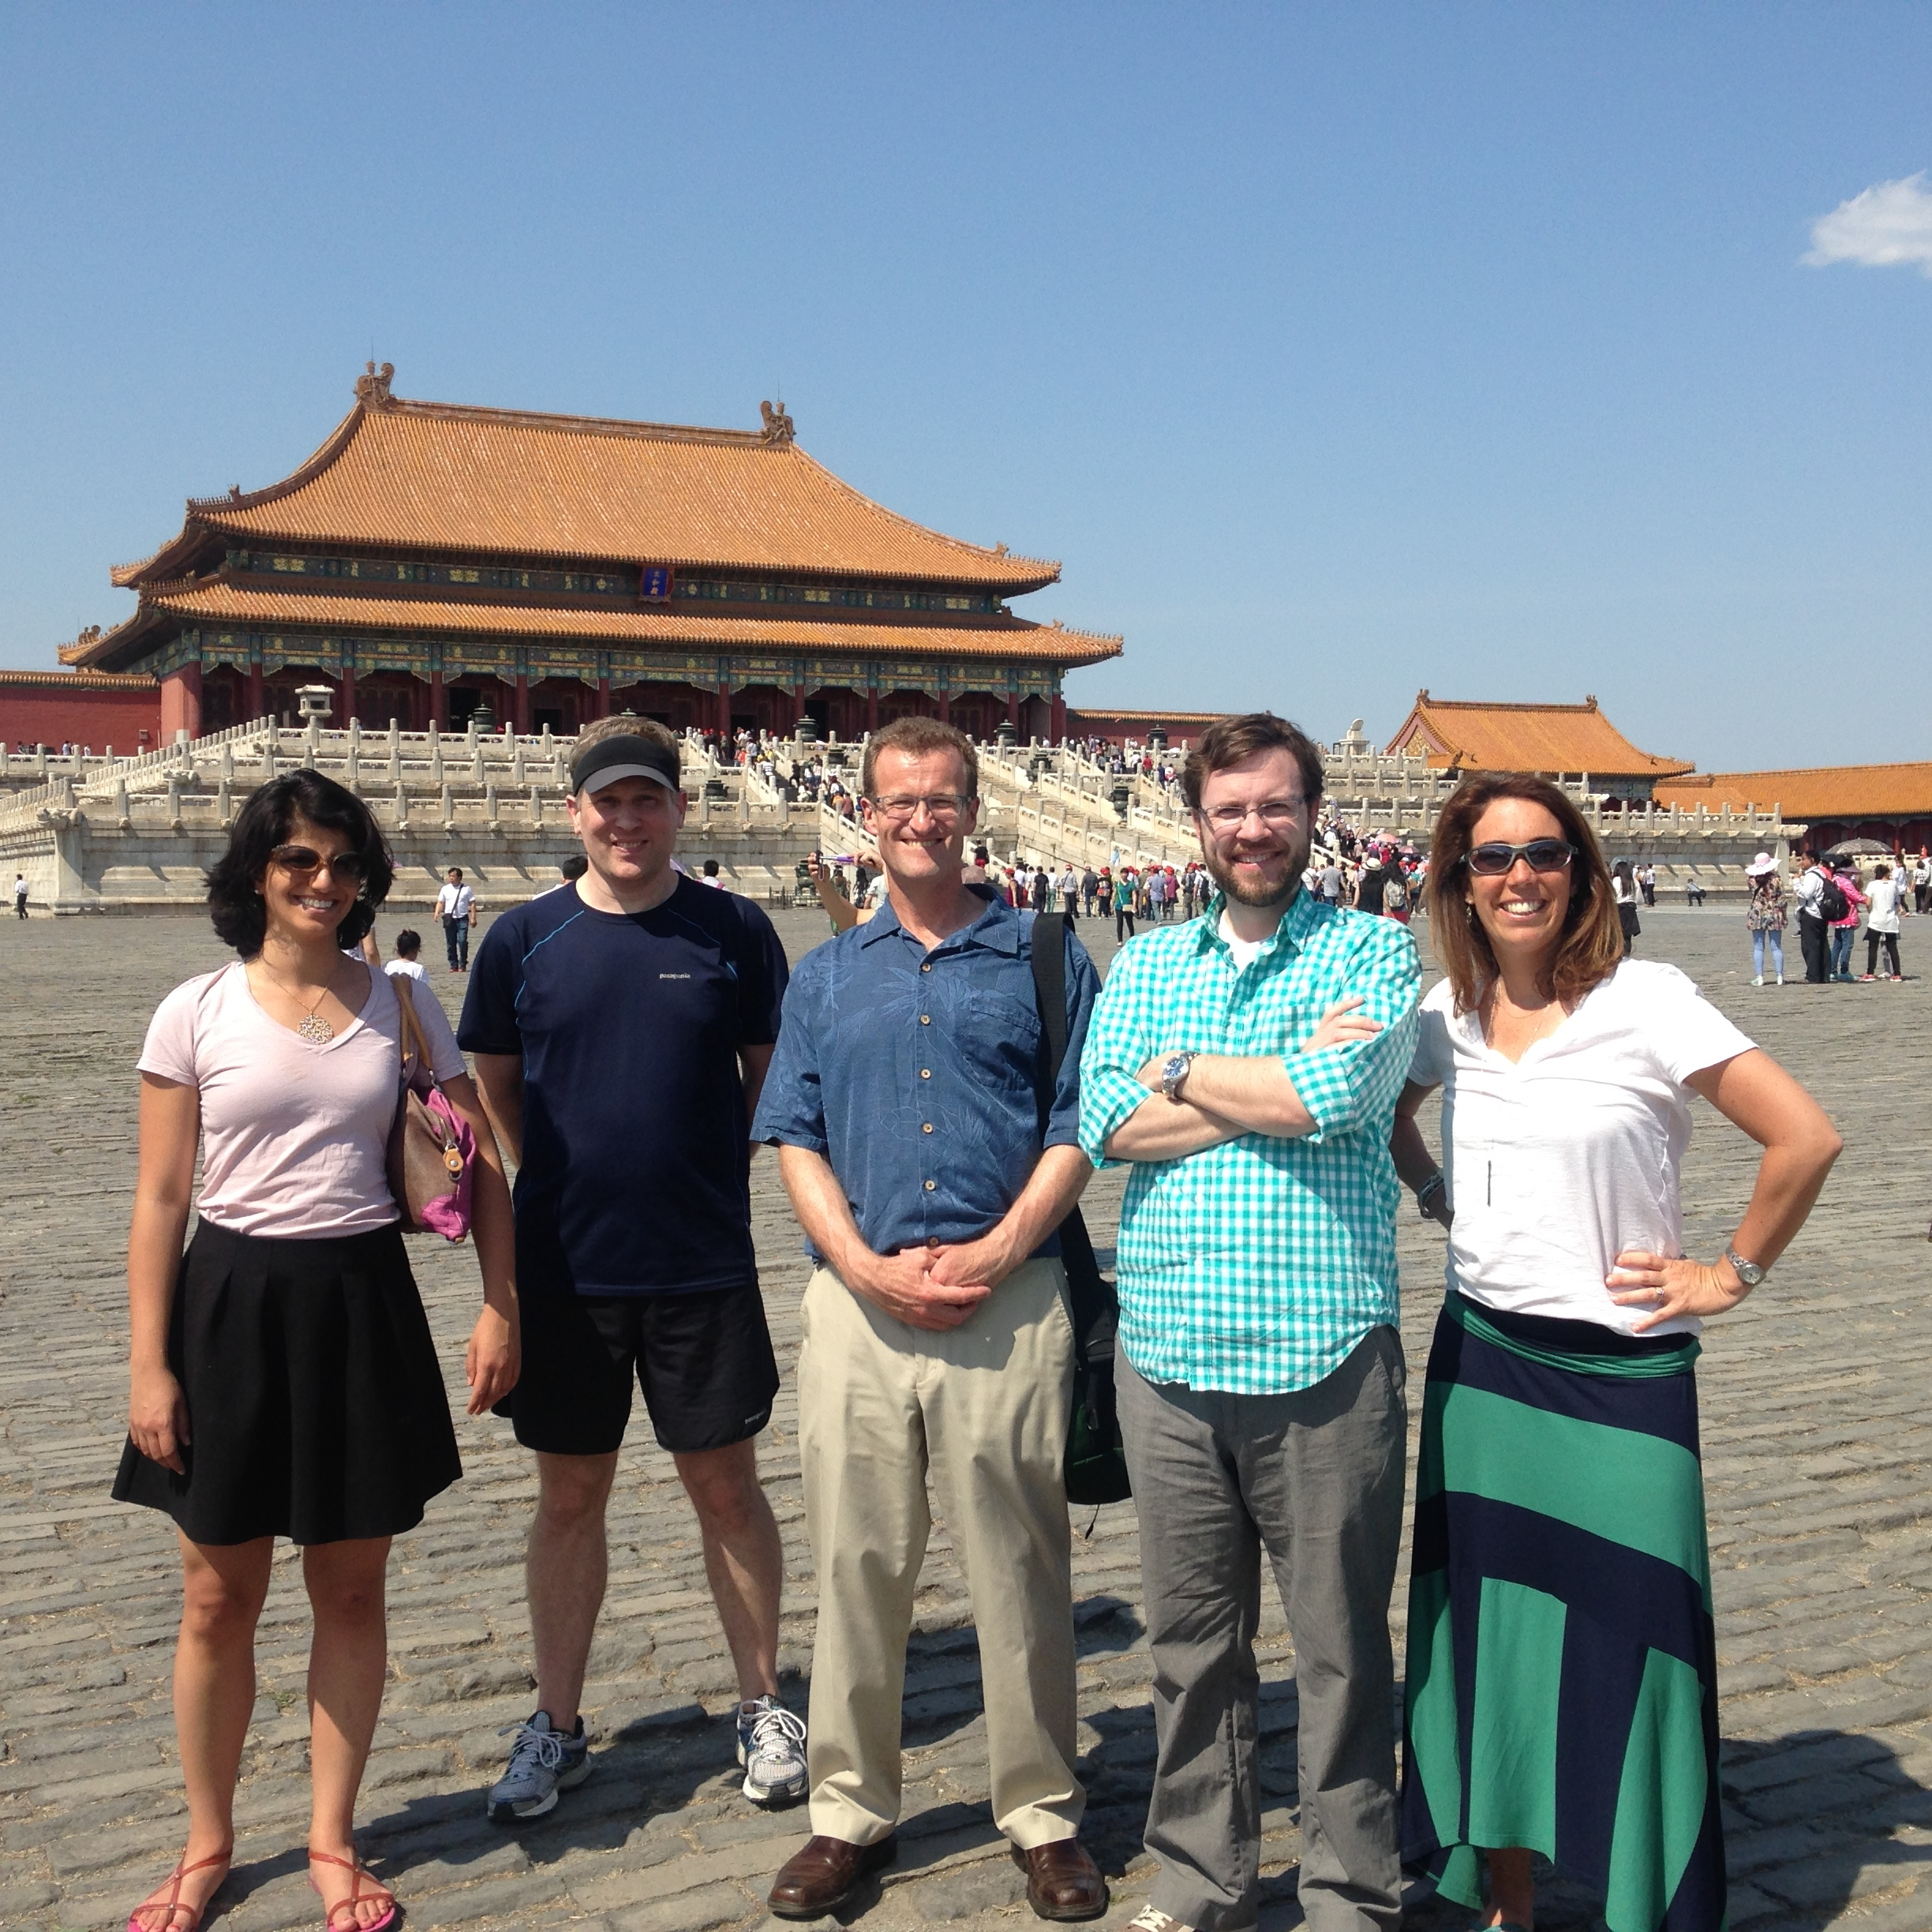 Sightseeing at the Forbidden City.